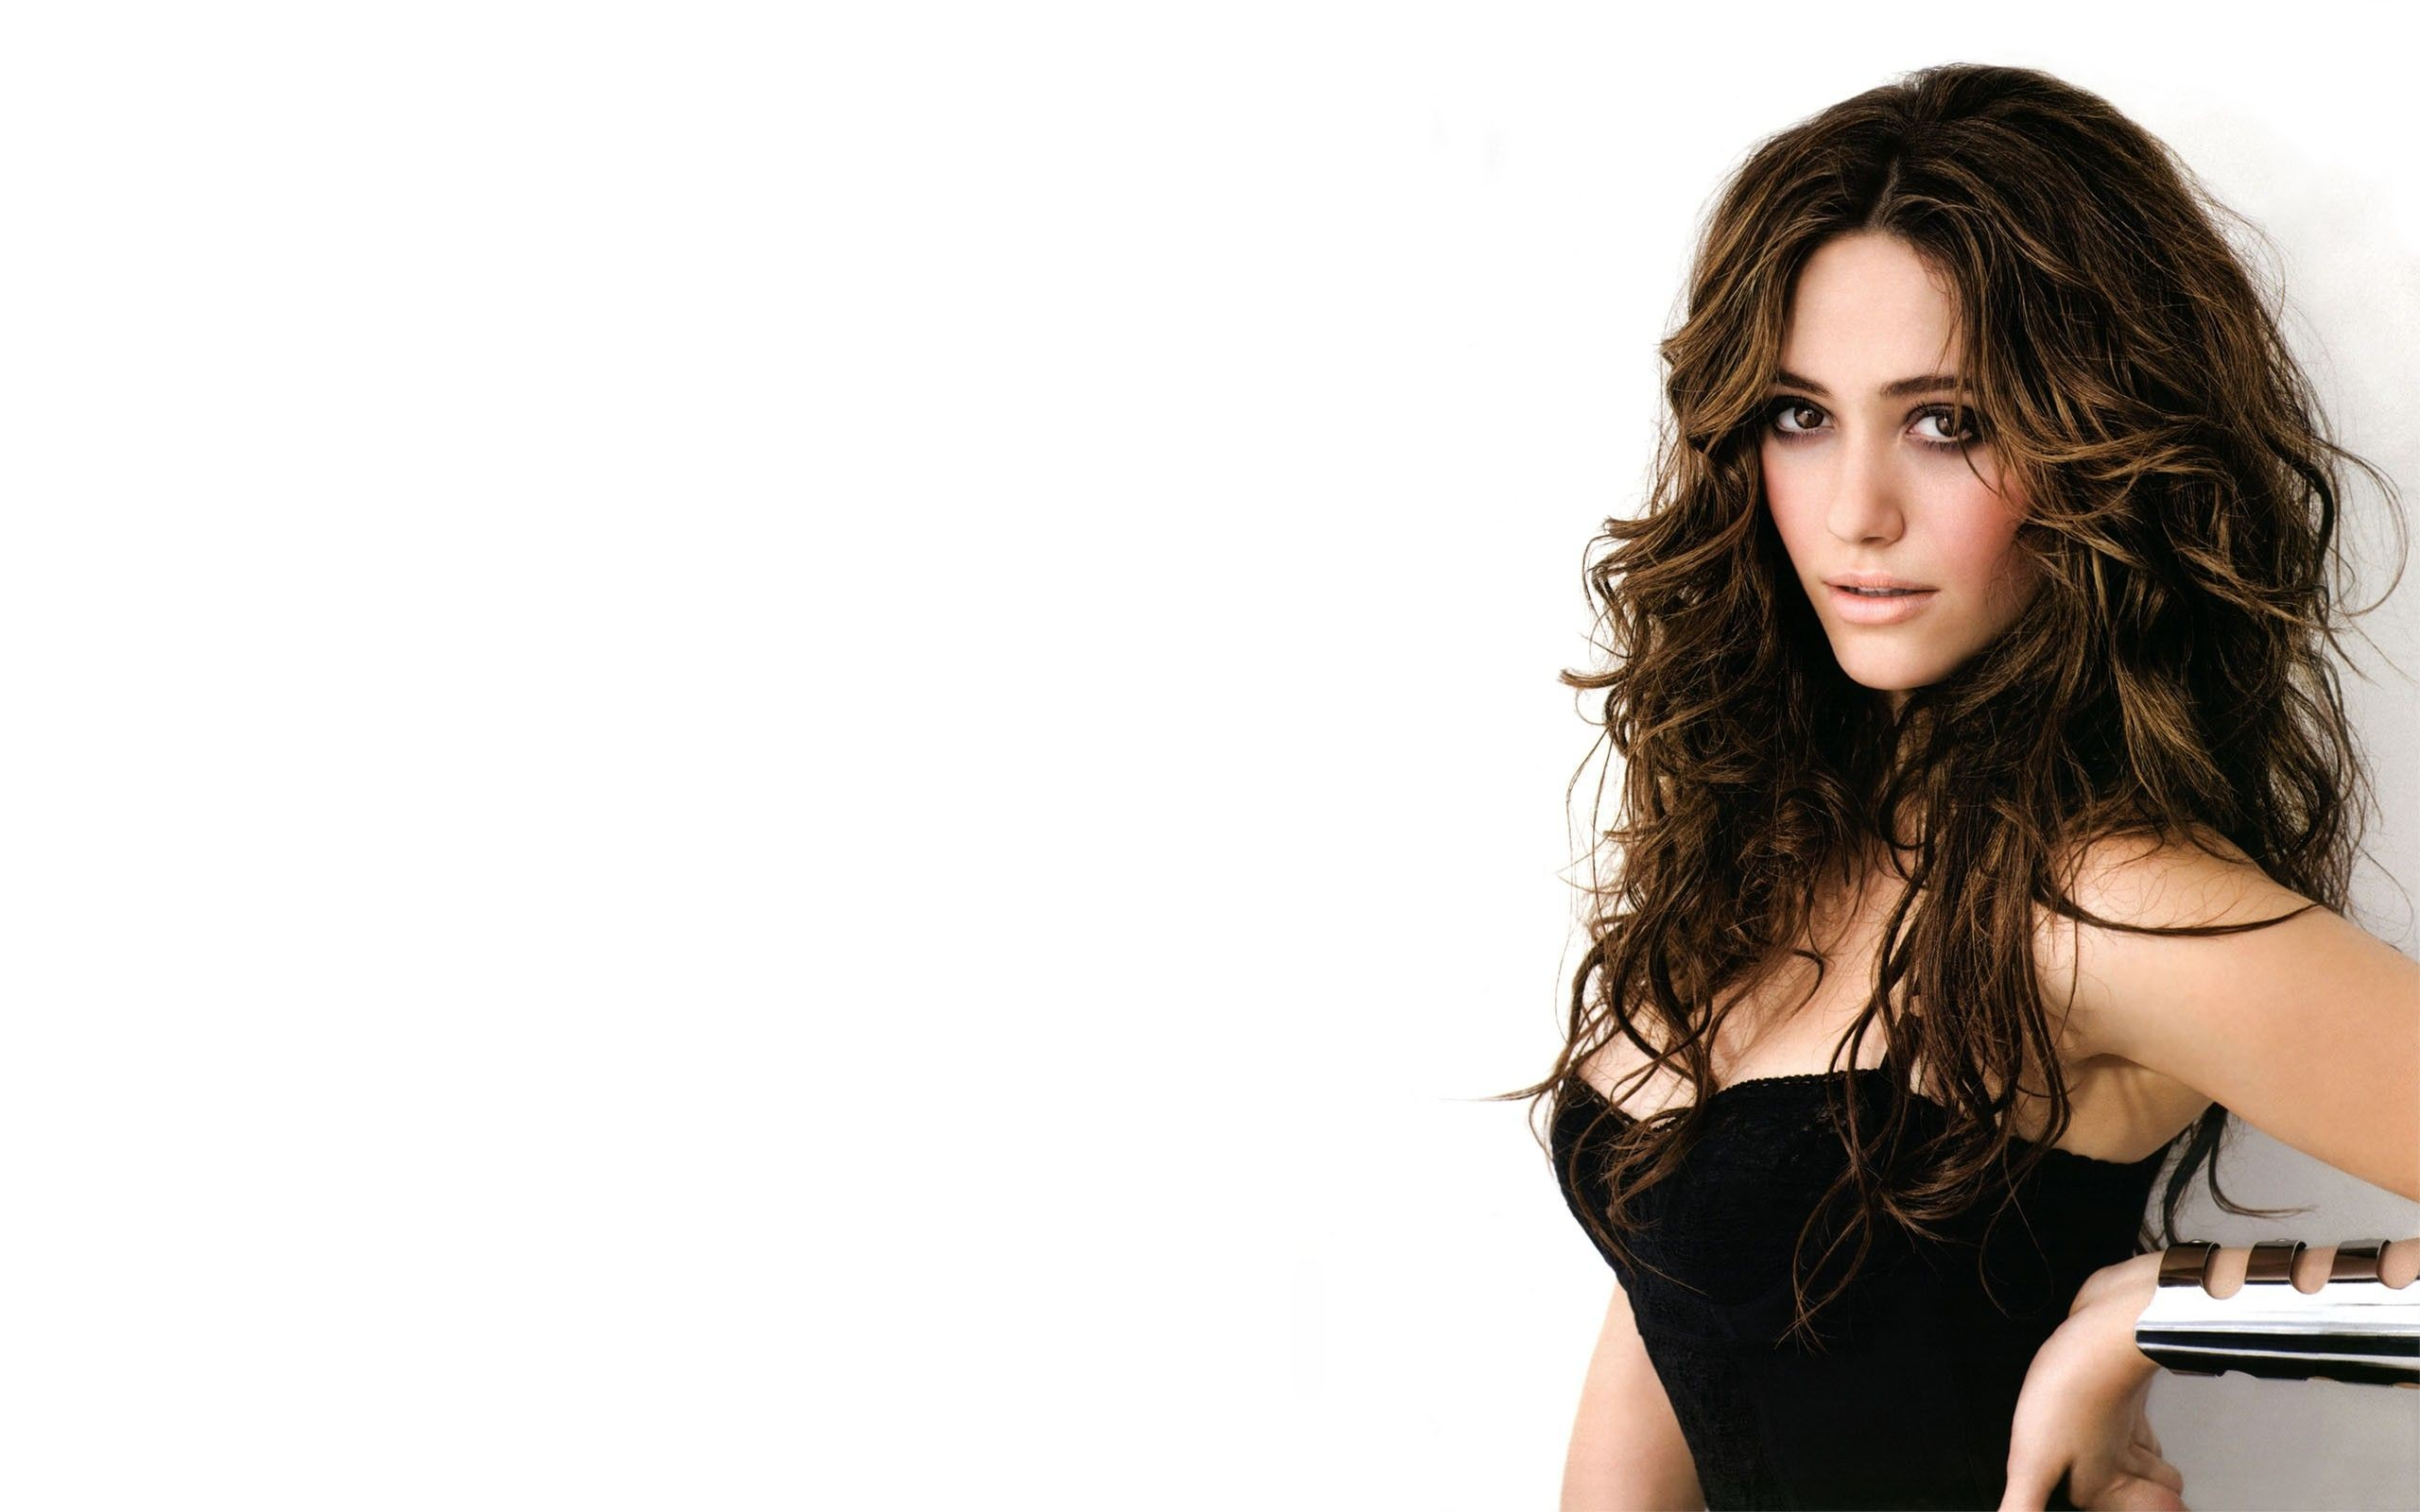 2560x1600 Emmy rossum Country Girl Images.